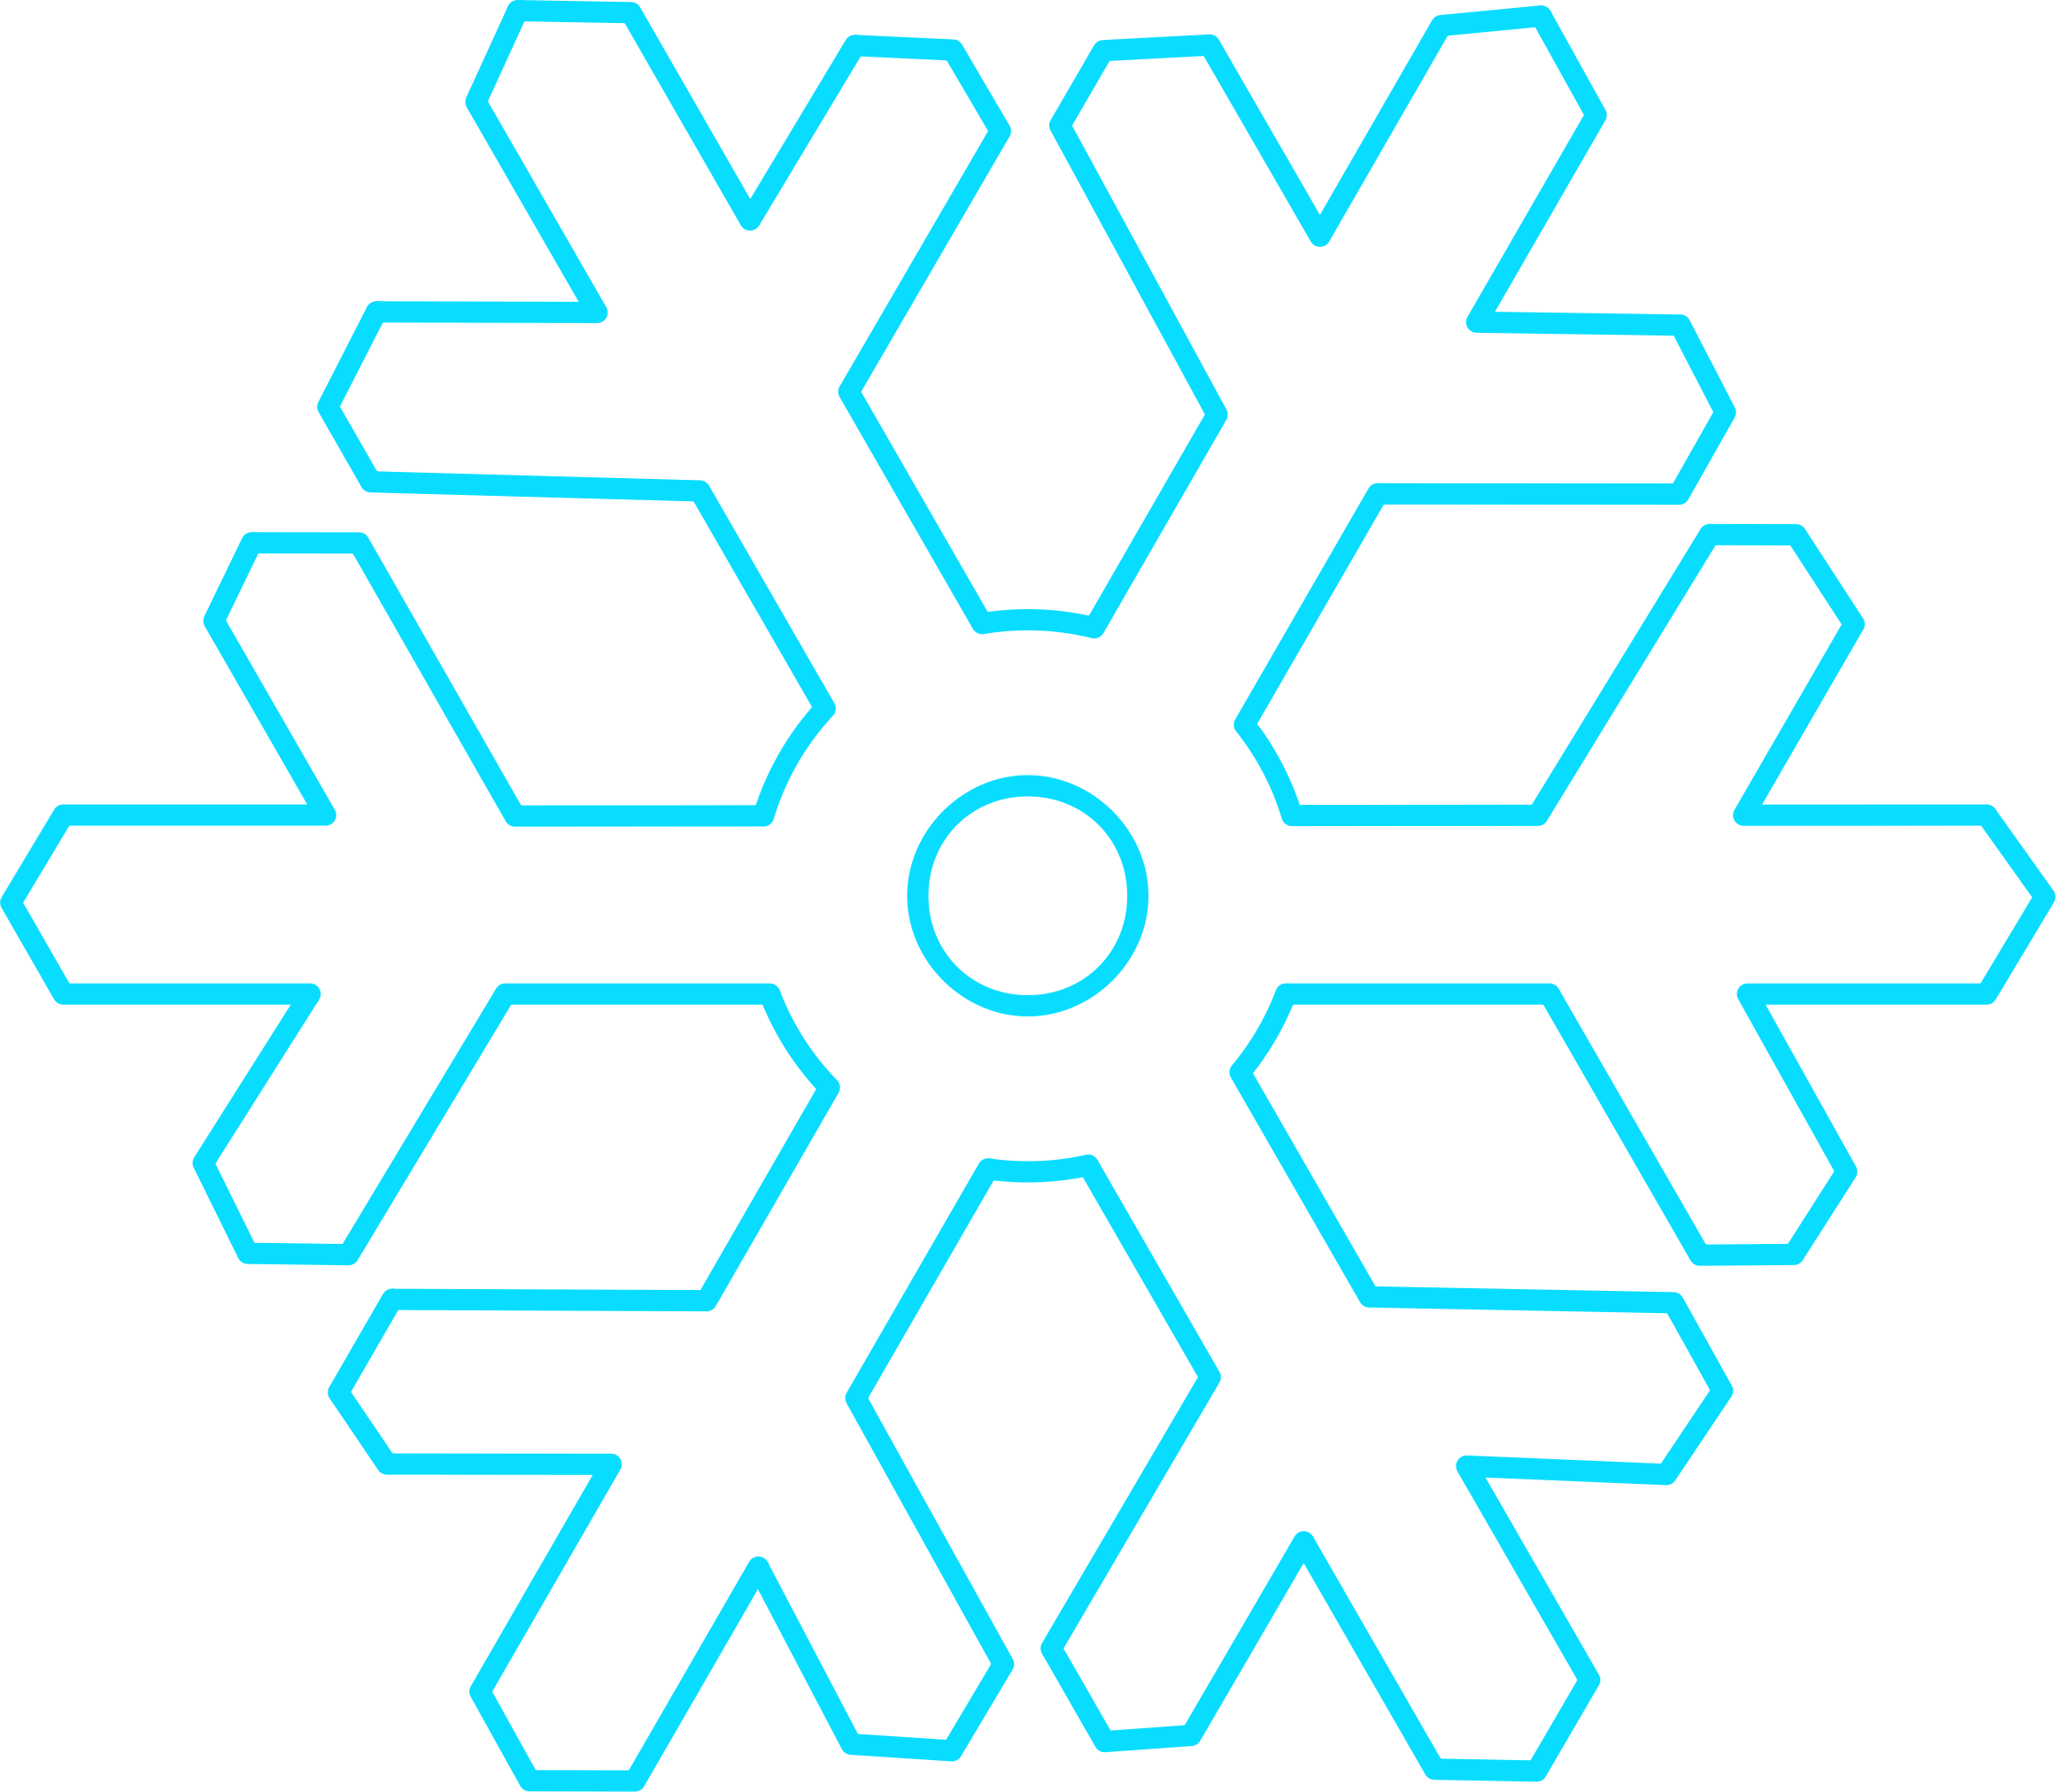 Snowflake clipart for microsoft office png freeuse stock Clipart - Flat white snowflake with hollow circular center png freeuse stock